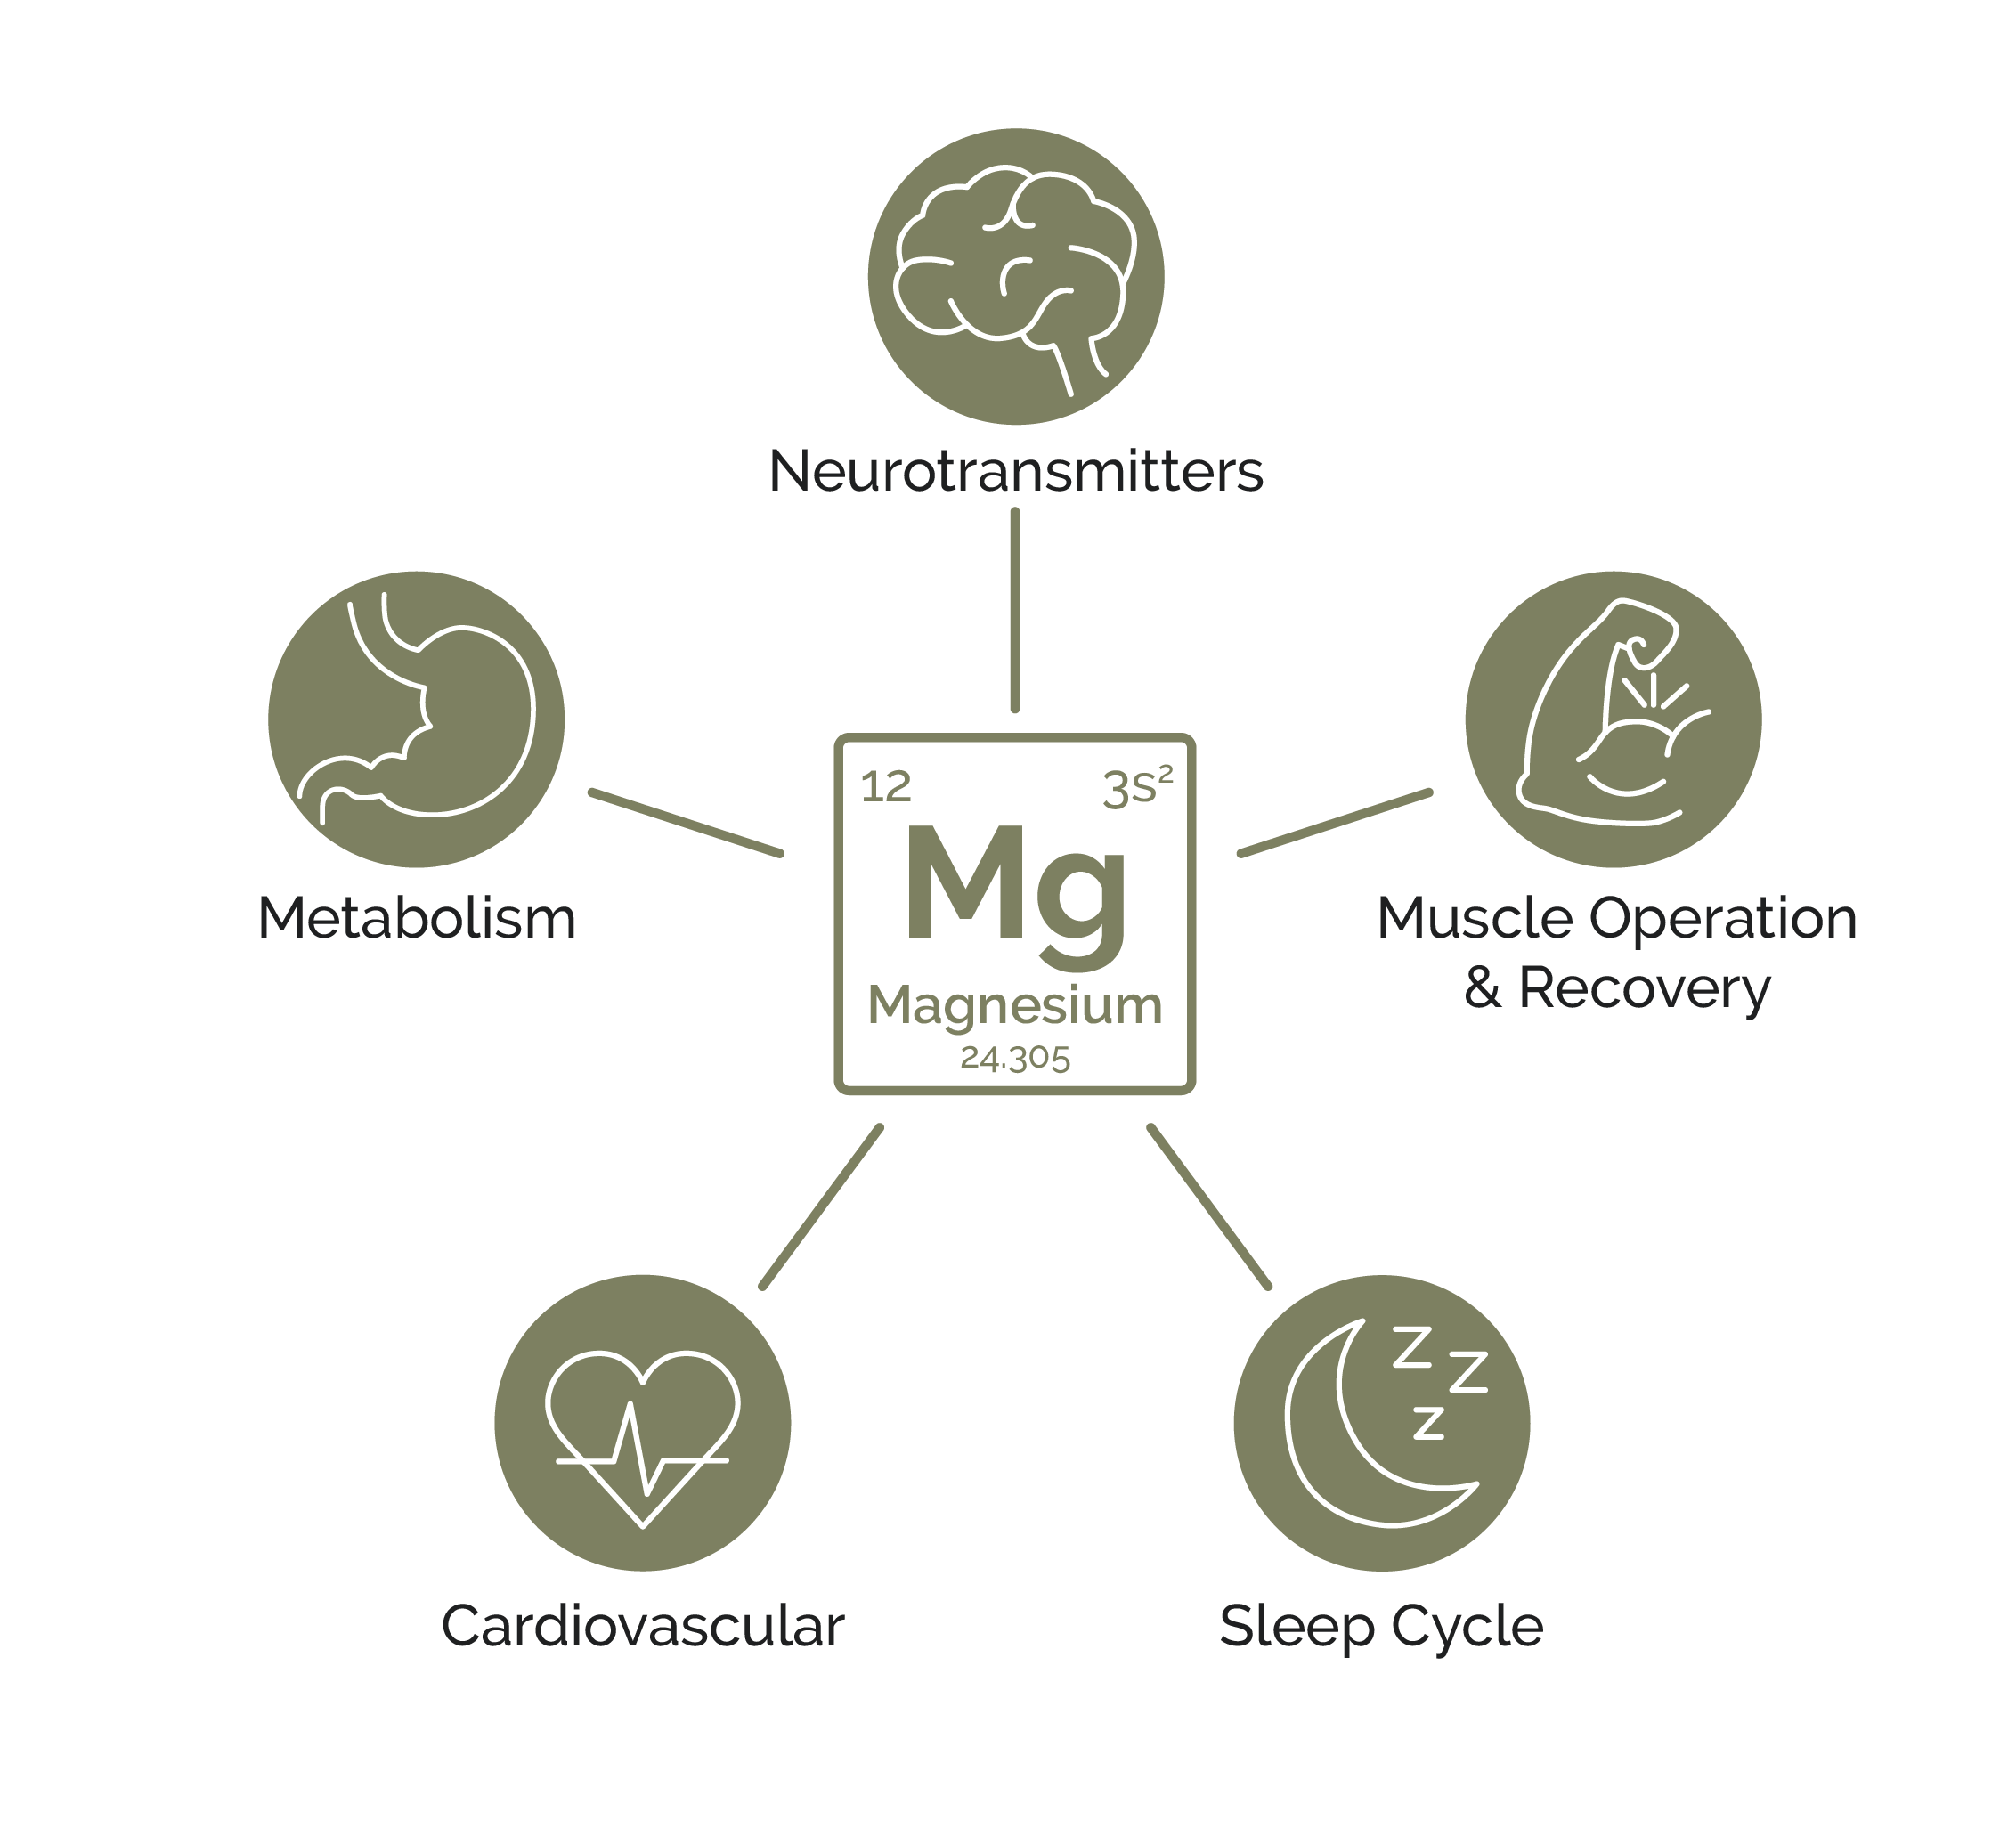 Magnesium affects these internal systems: cardiovascular, muscle operation & recovery, metabolism, neurotransmitters, and sleep cycle